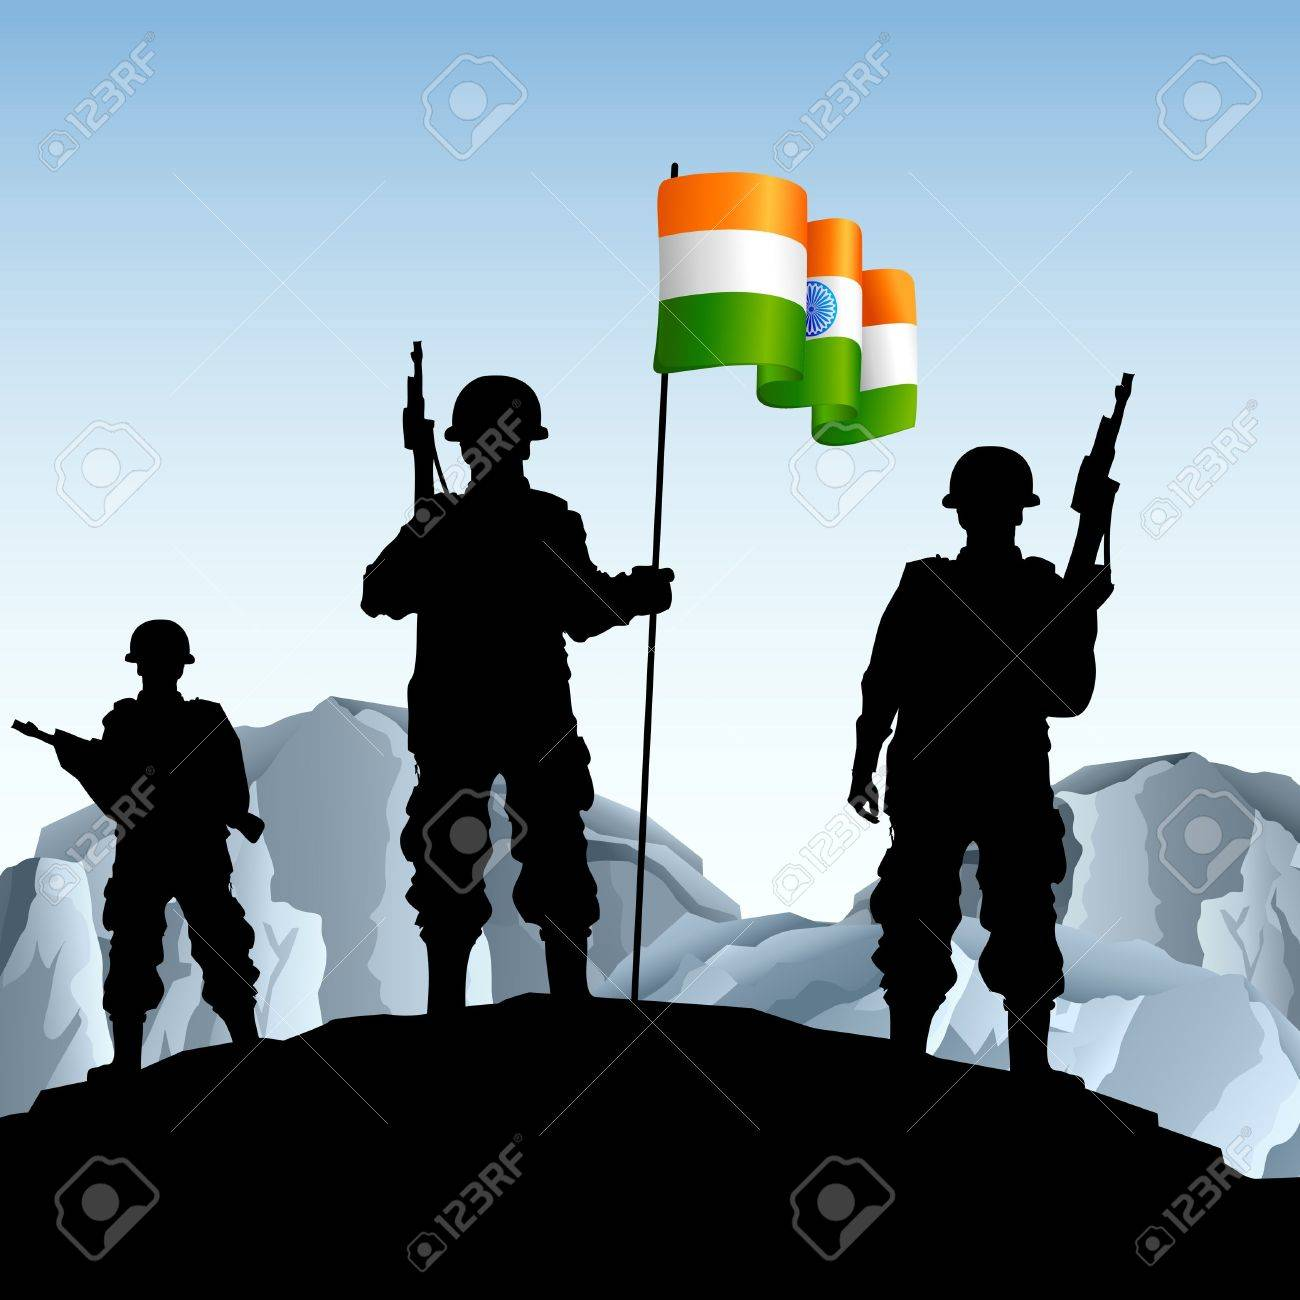 illustration of soldier standing on hill with Indian flag Stock Vector - 11779498